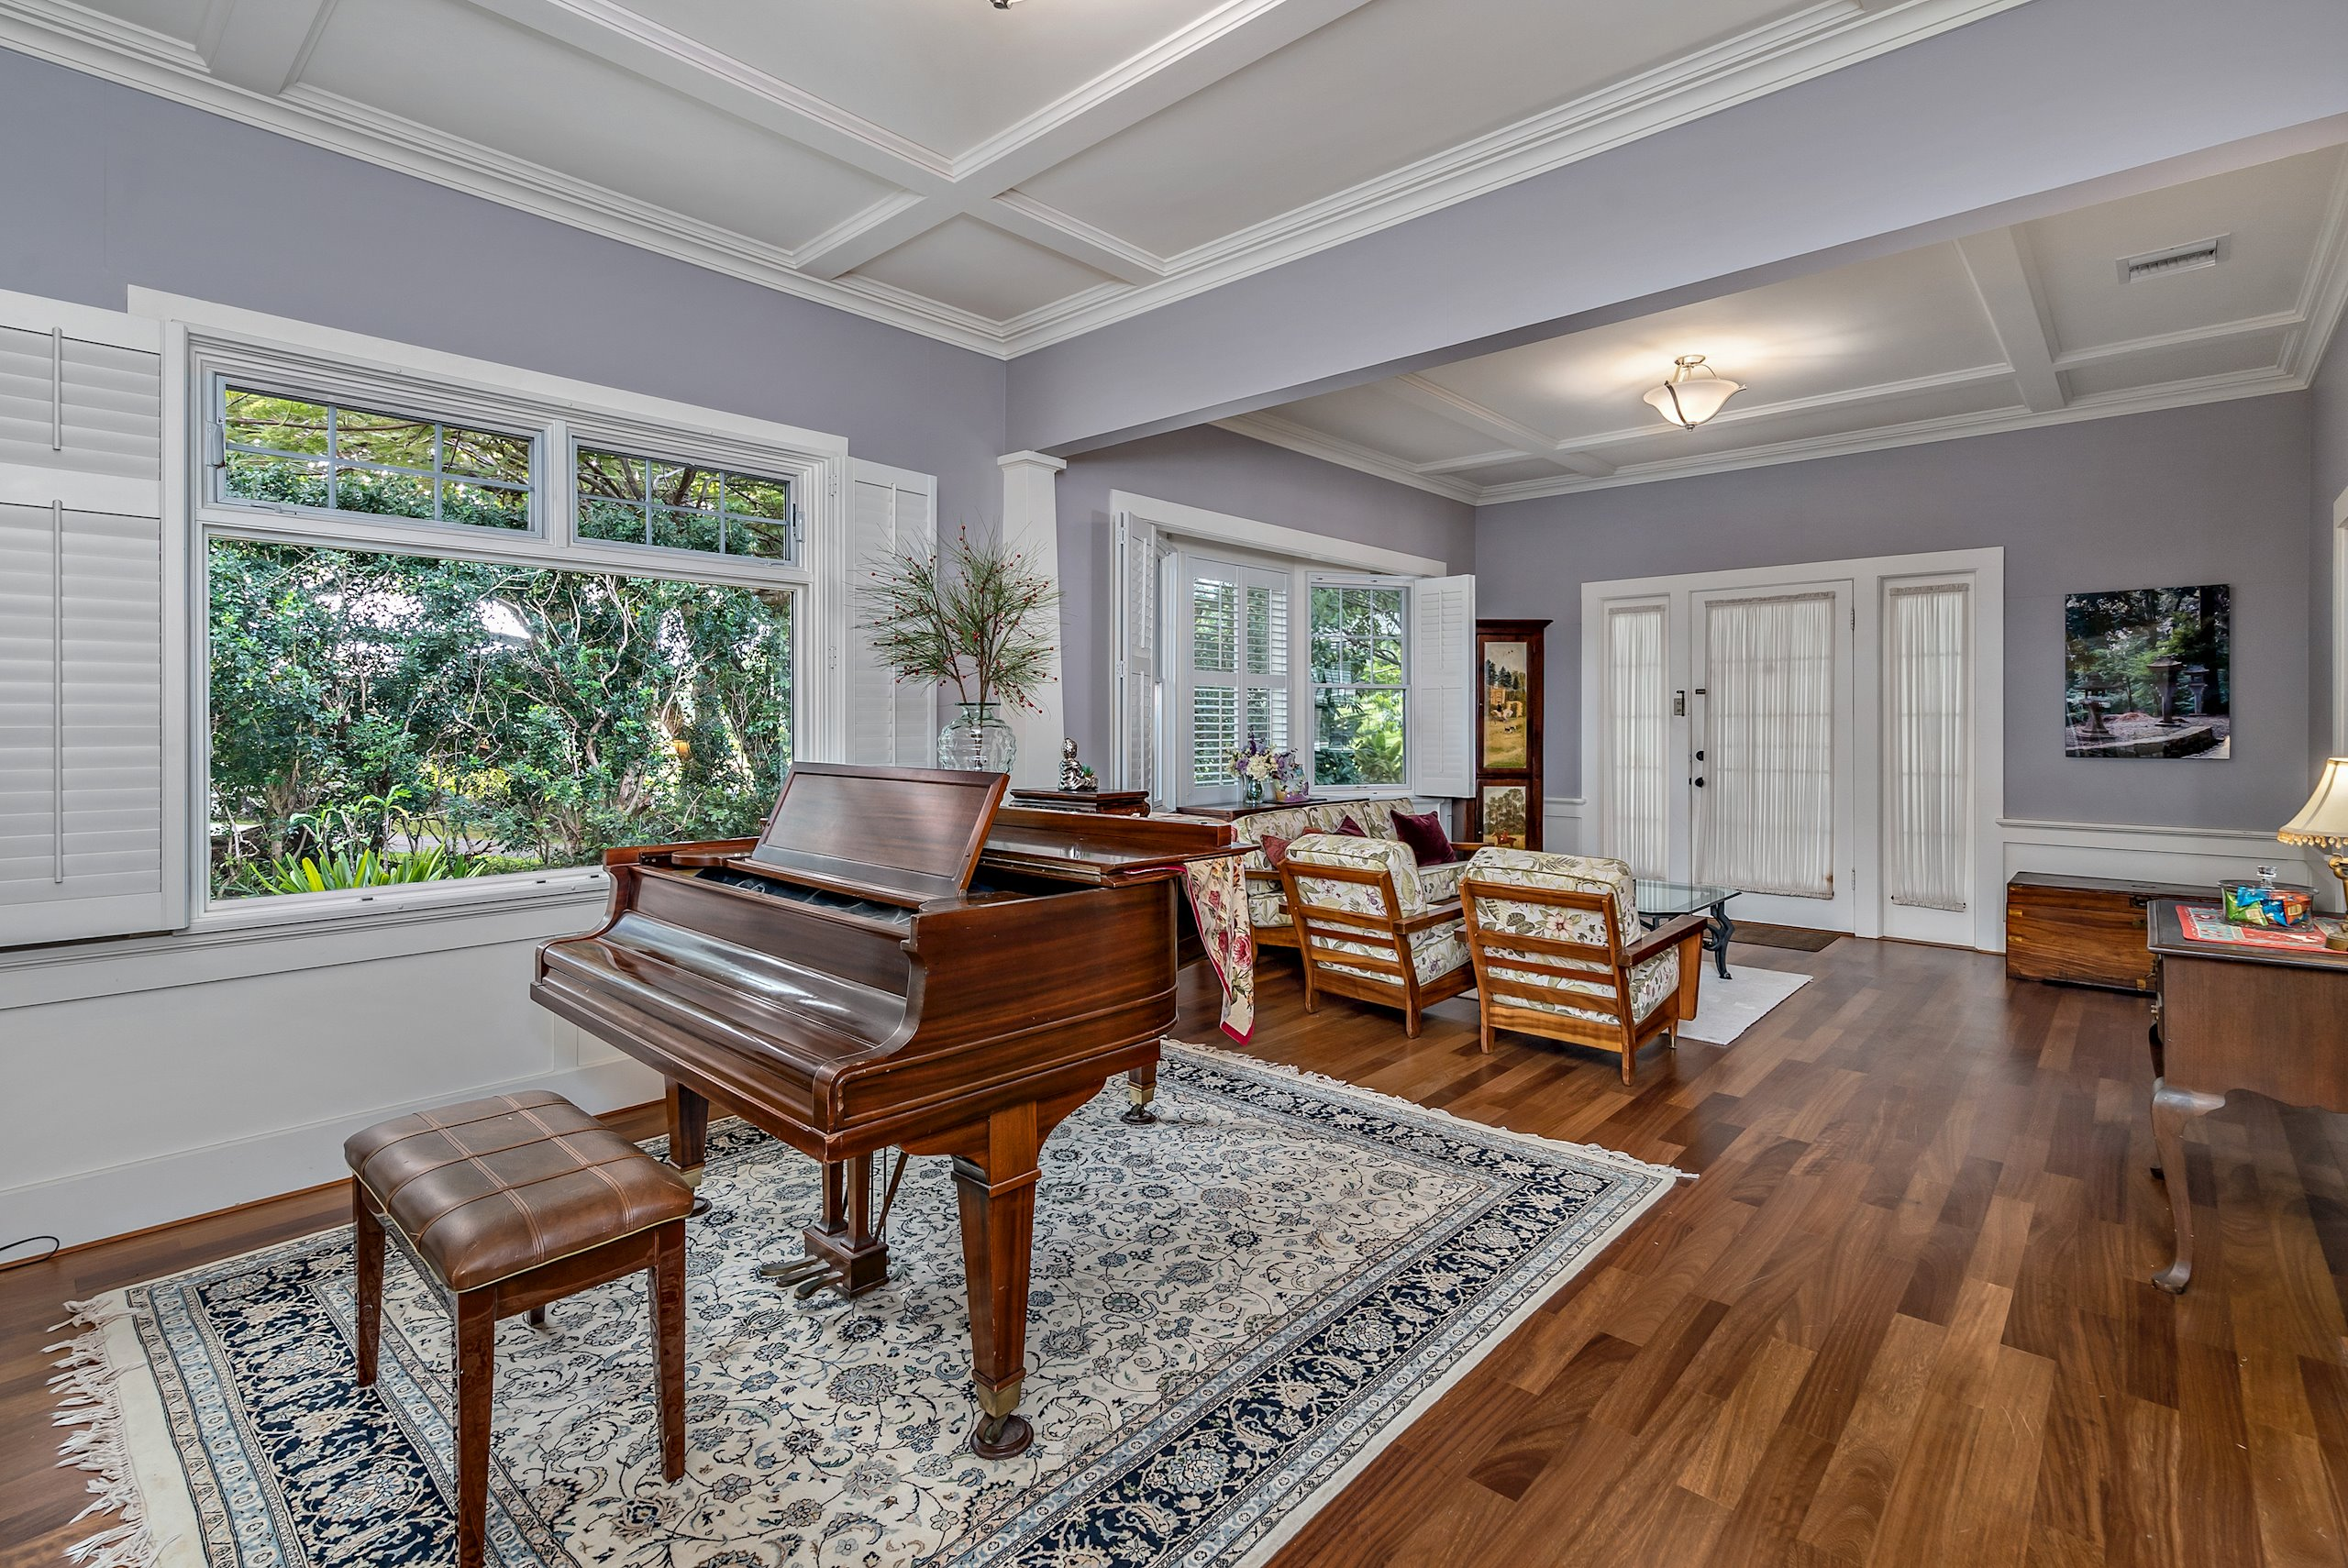 Double French door entry, Shutters on double-hung windows, 10' high coffered ceiling